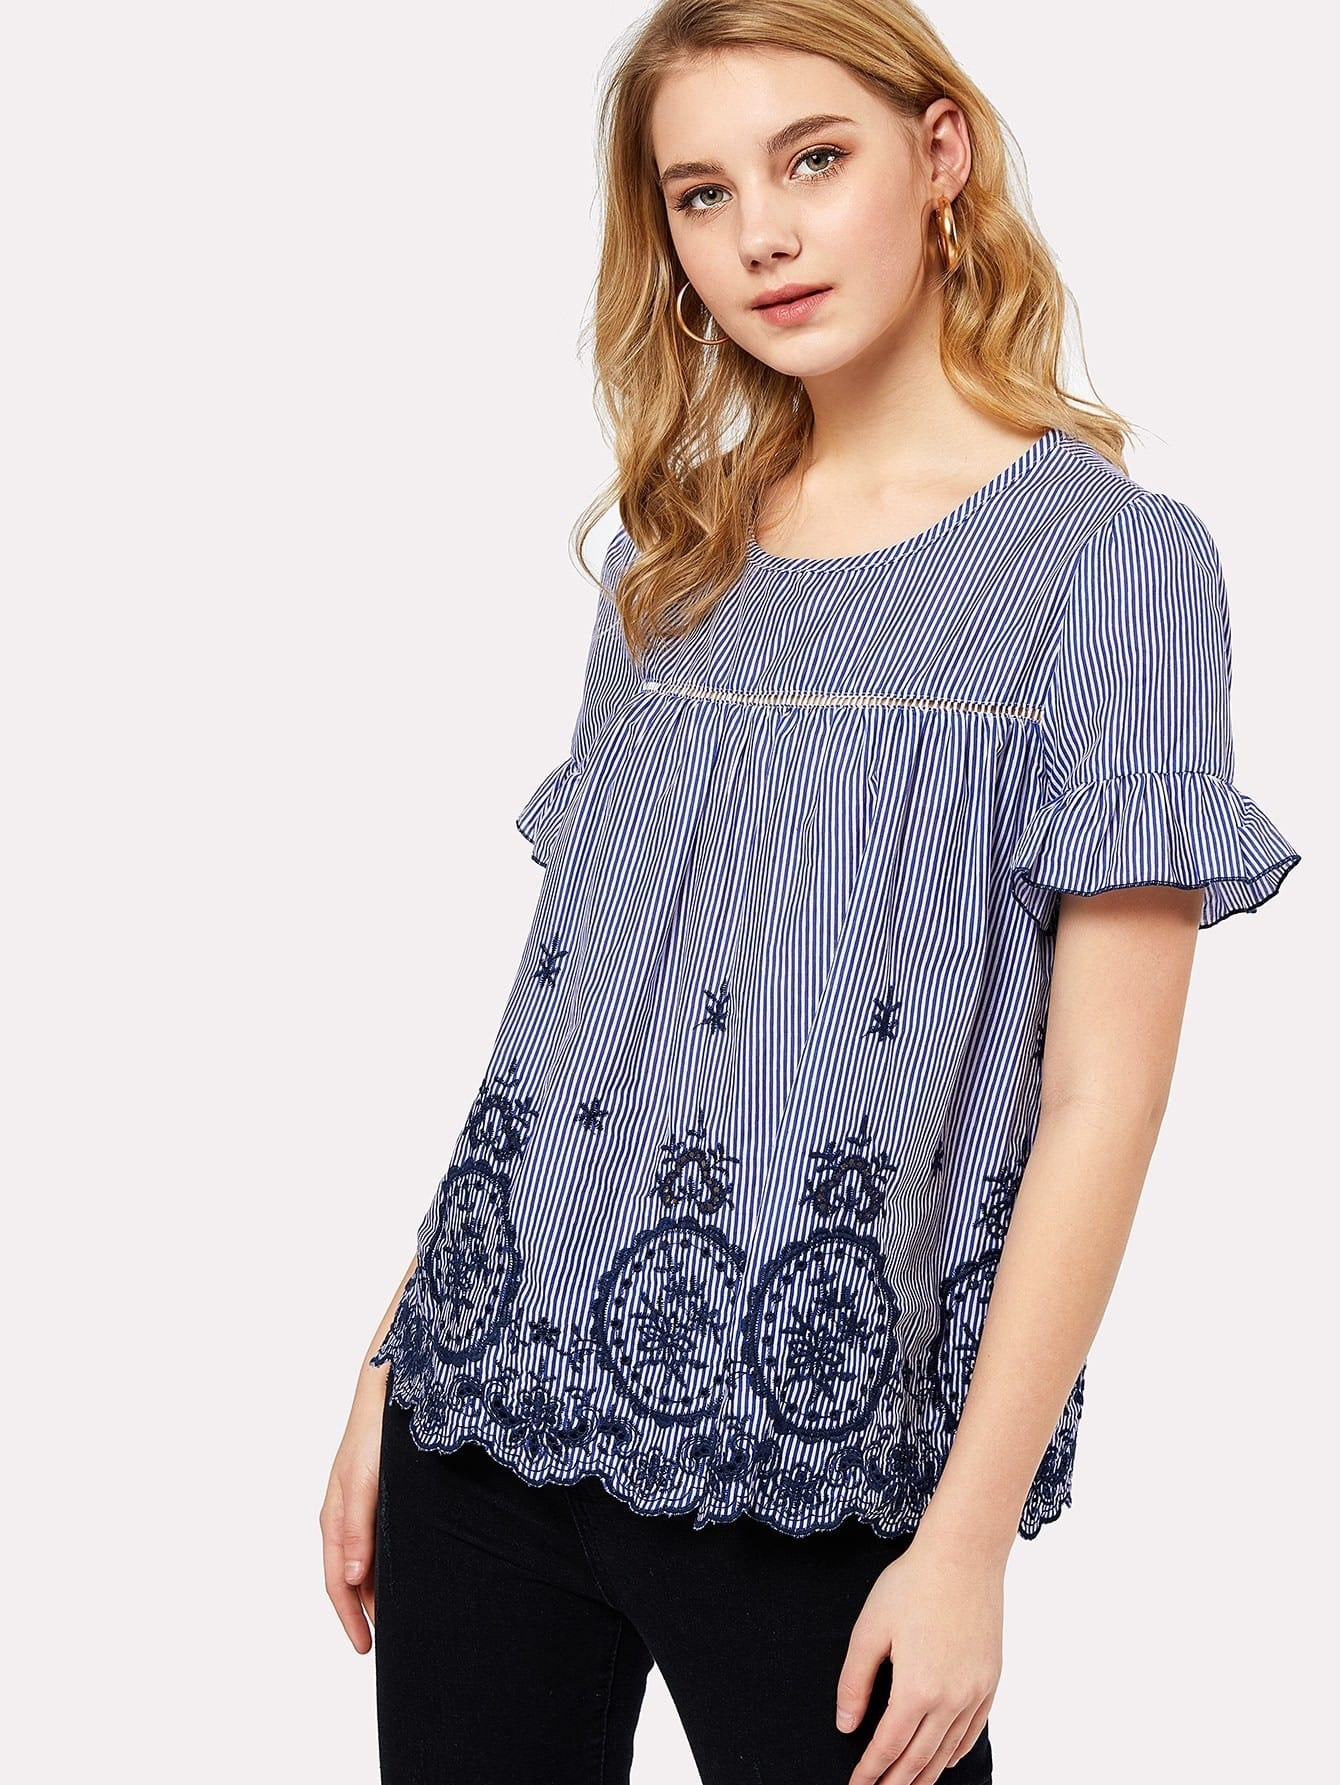 Ruffle Sleeve Eyelet Embroidered Scallop Hem Top scallop waist ruffle hem crop pants